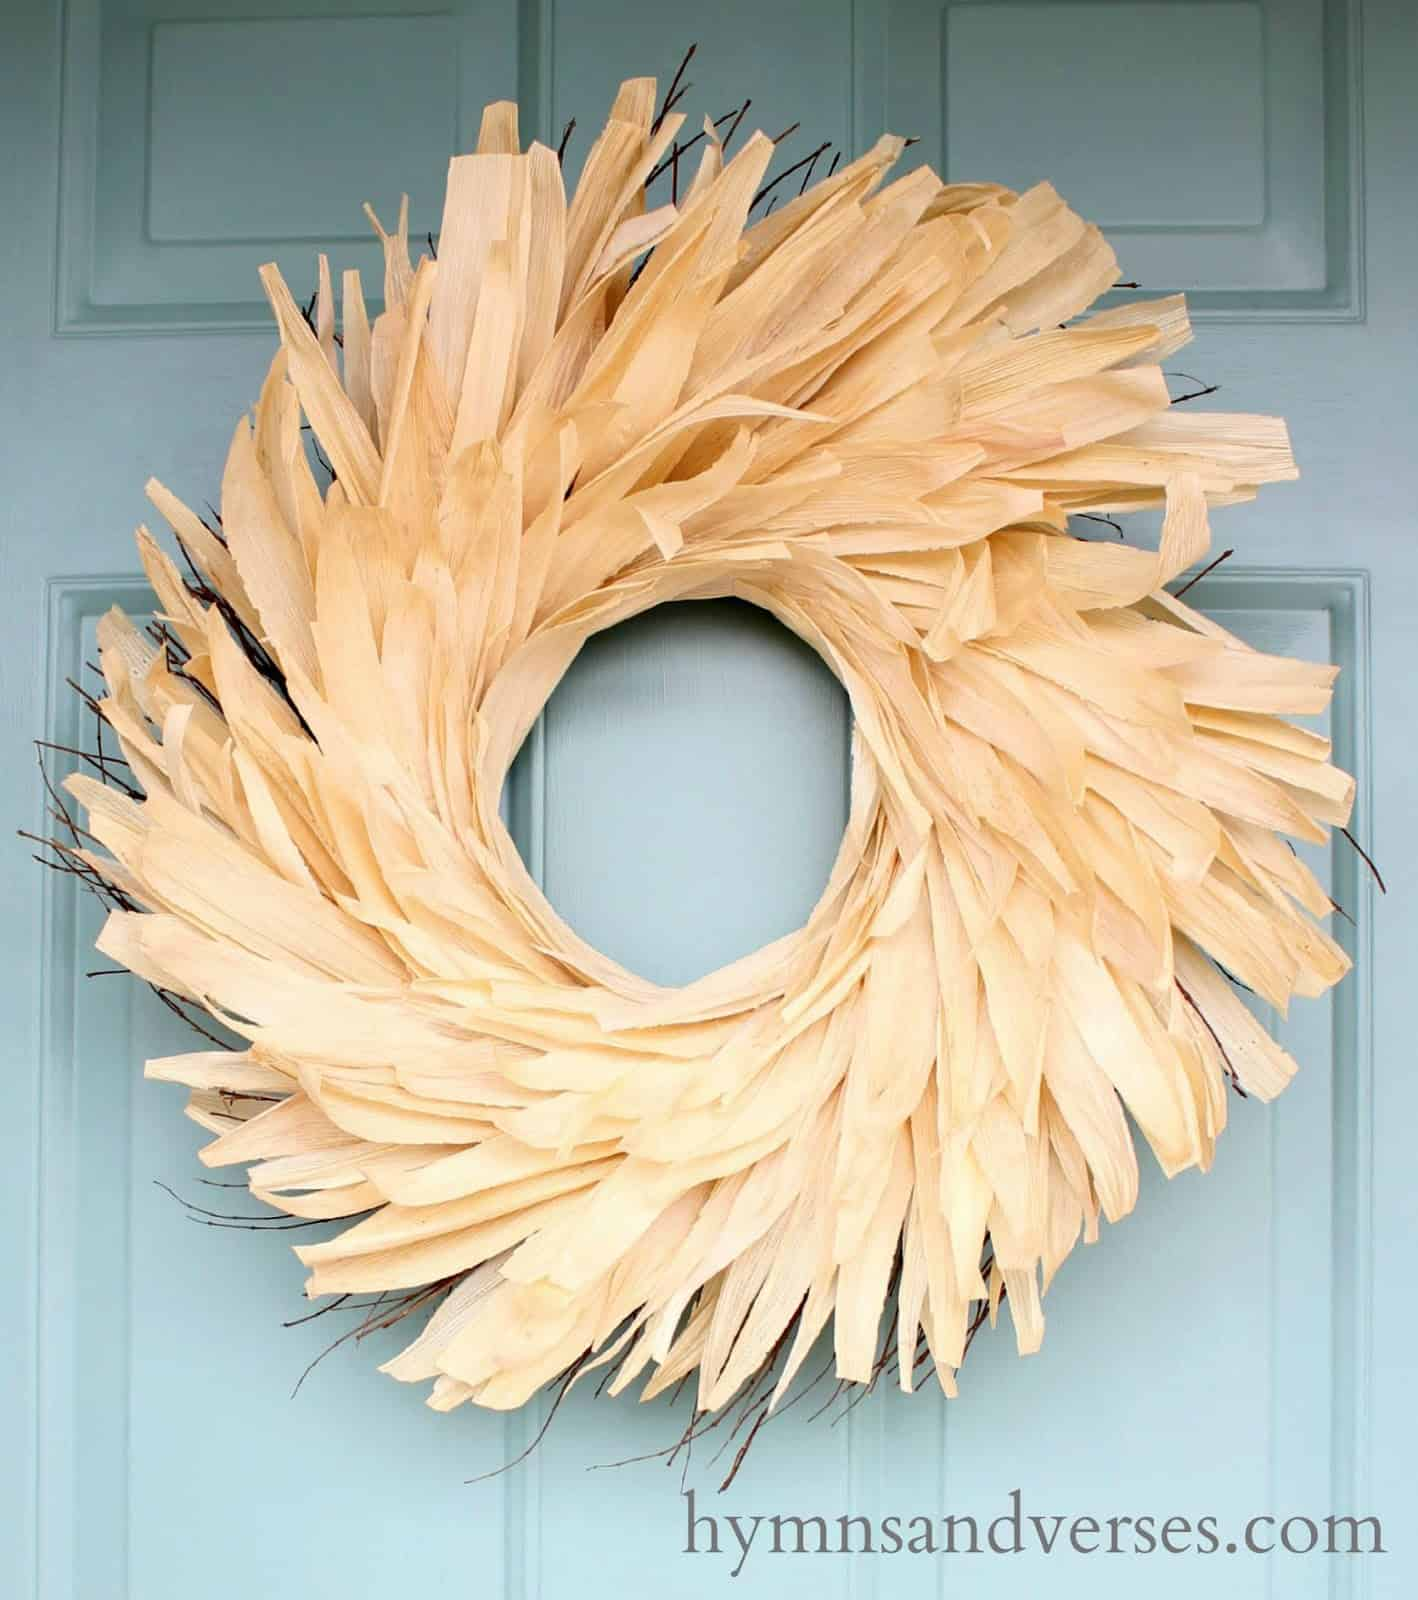 Anthropologie Corn Husk Wreath from Hymns and Verses